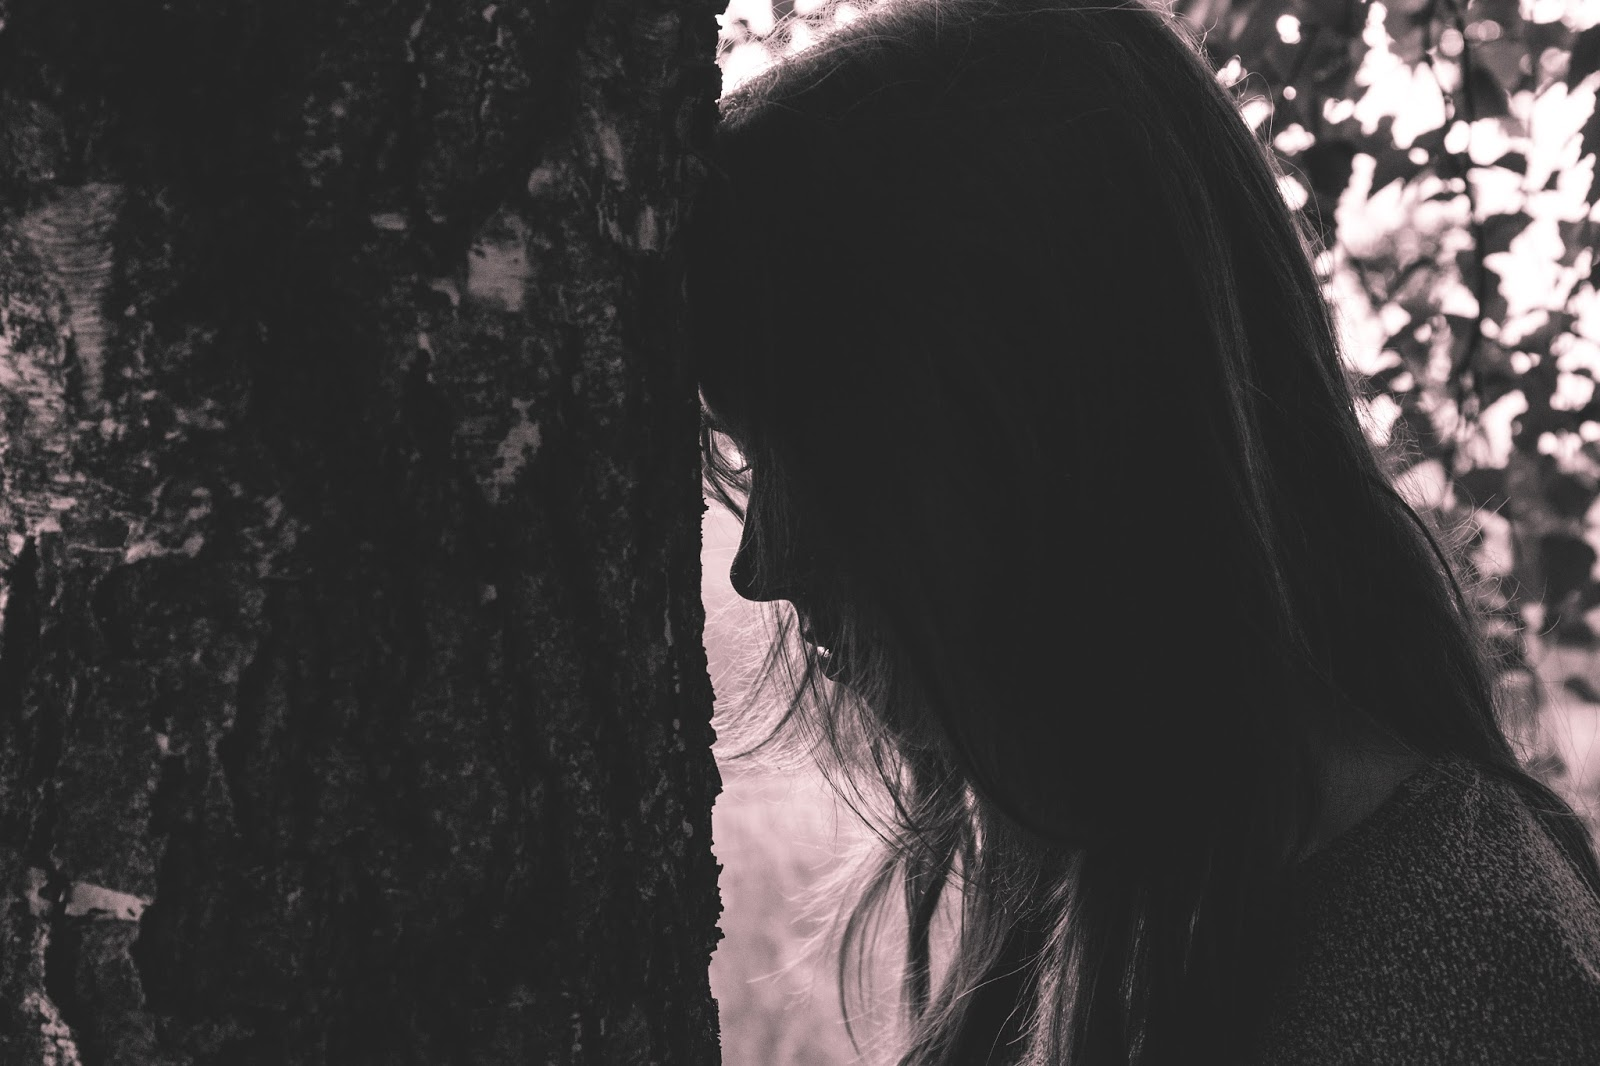 Woman looking sadly at a tree